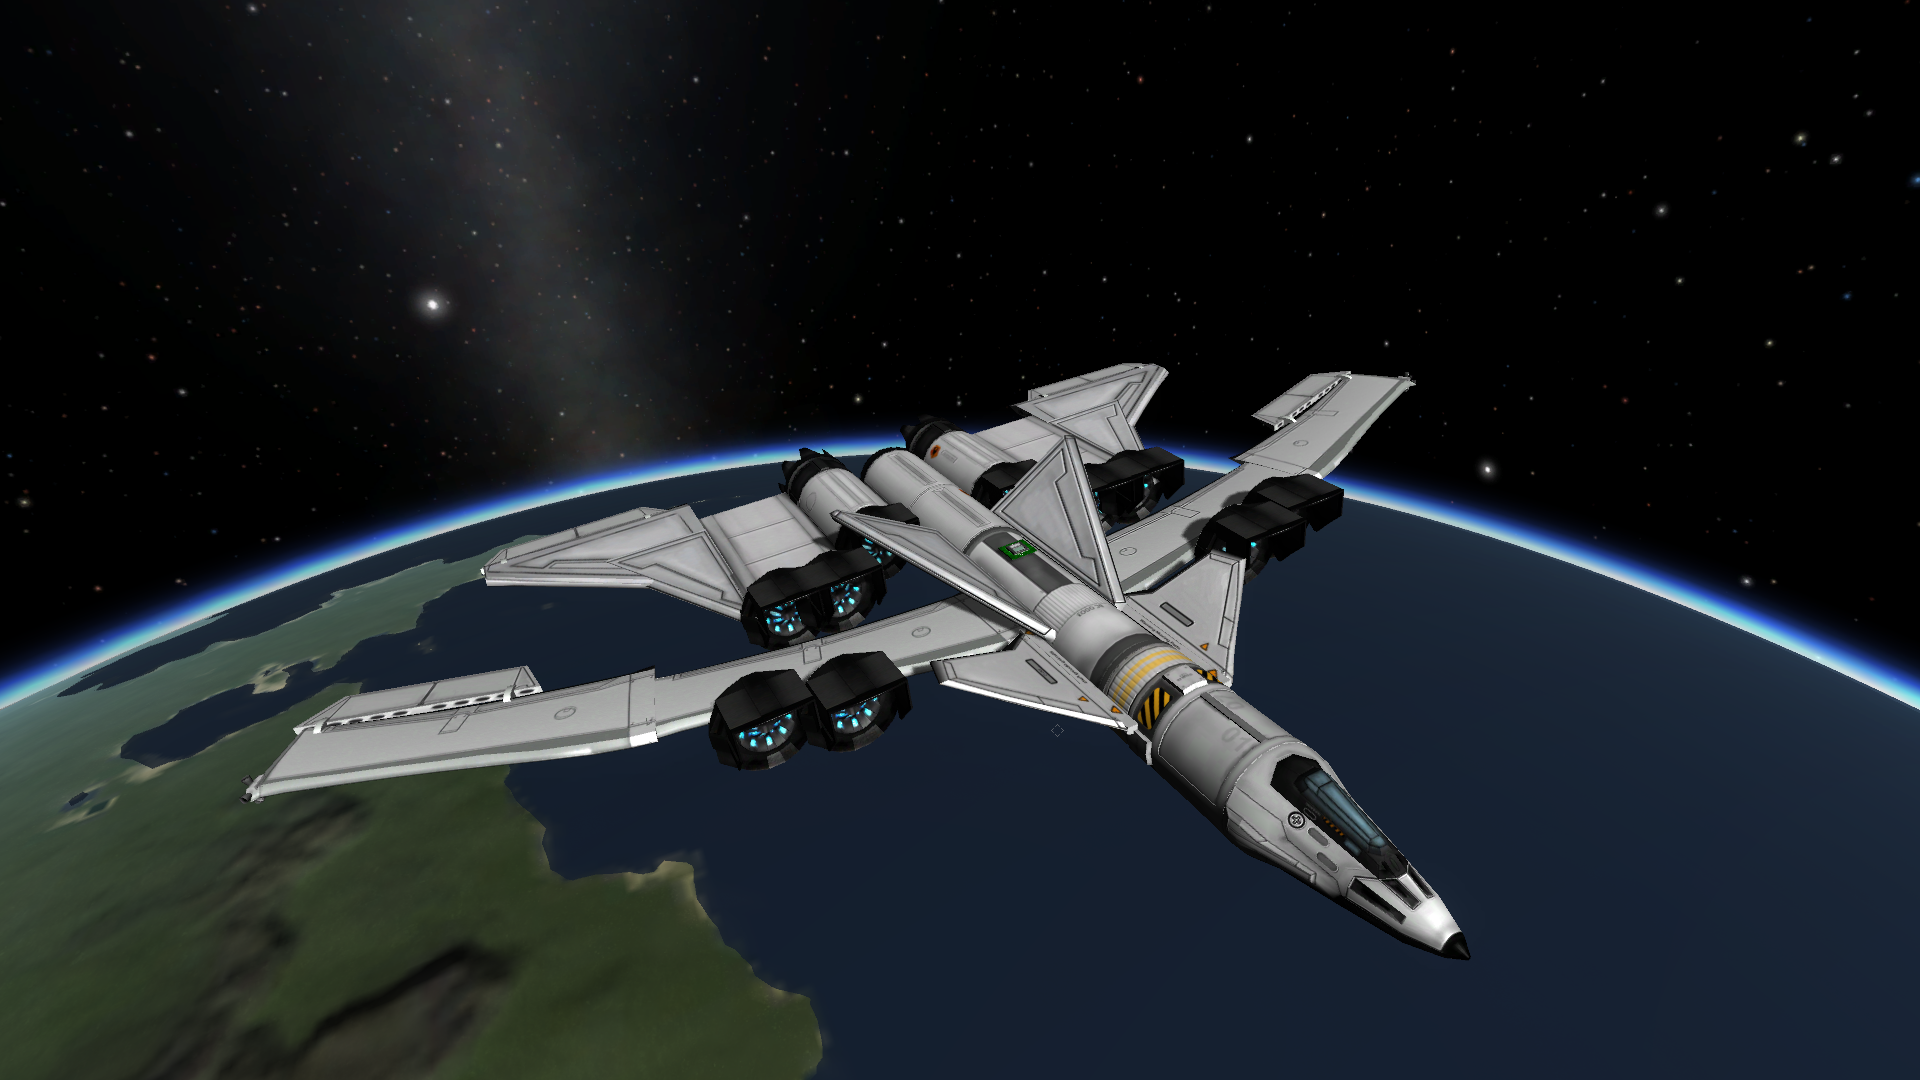 kerbal space program space station - photo #40